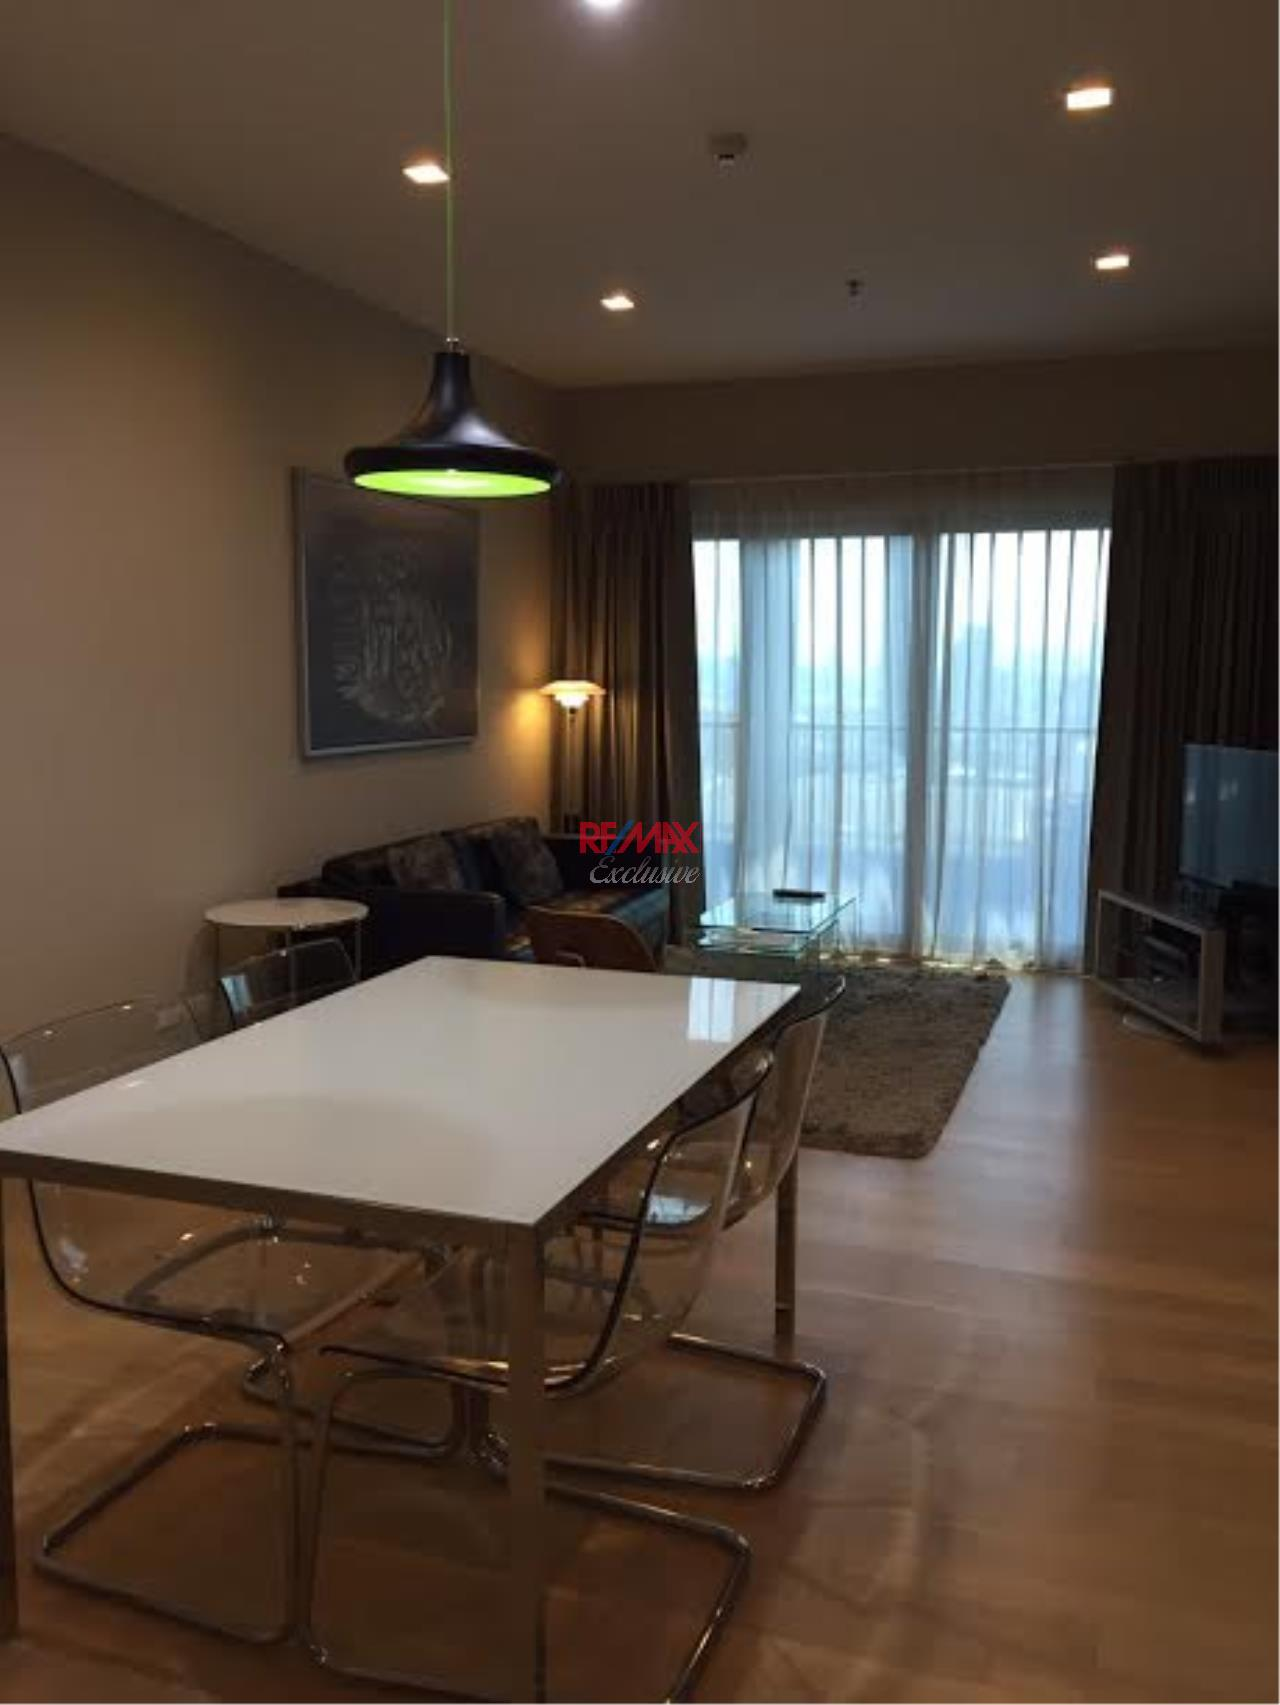 RE/MAX Exclusive Agency's Amazing condo with 2 bedrooms for Sale 14,800,000 THB, For Rent 65,000 THB 6